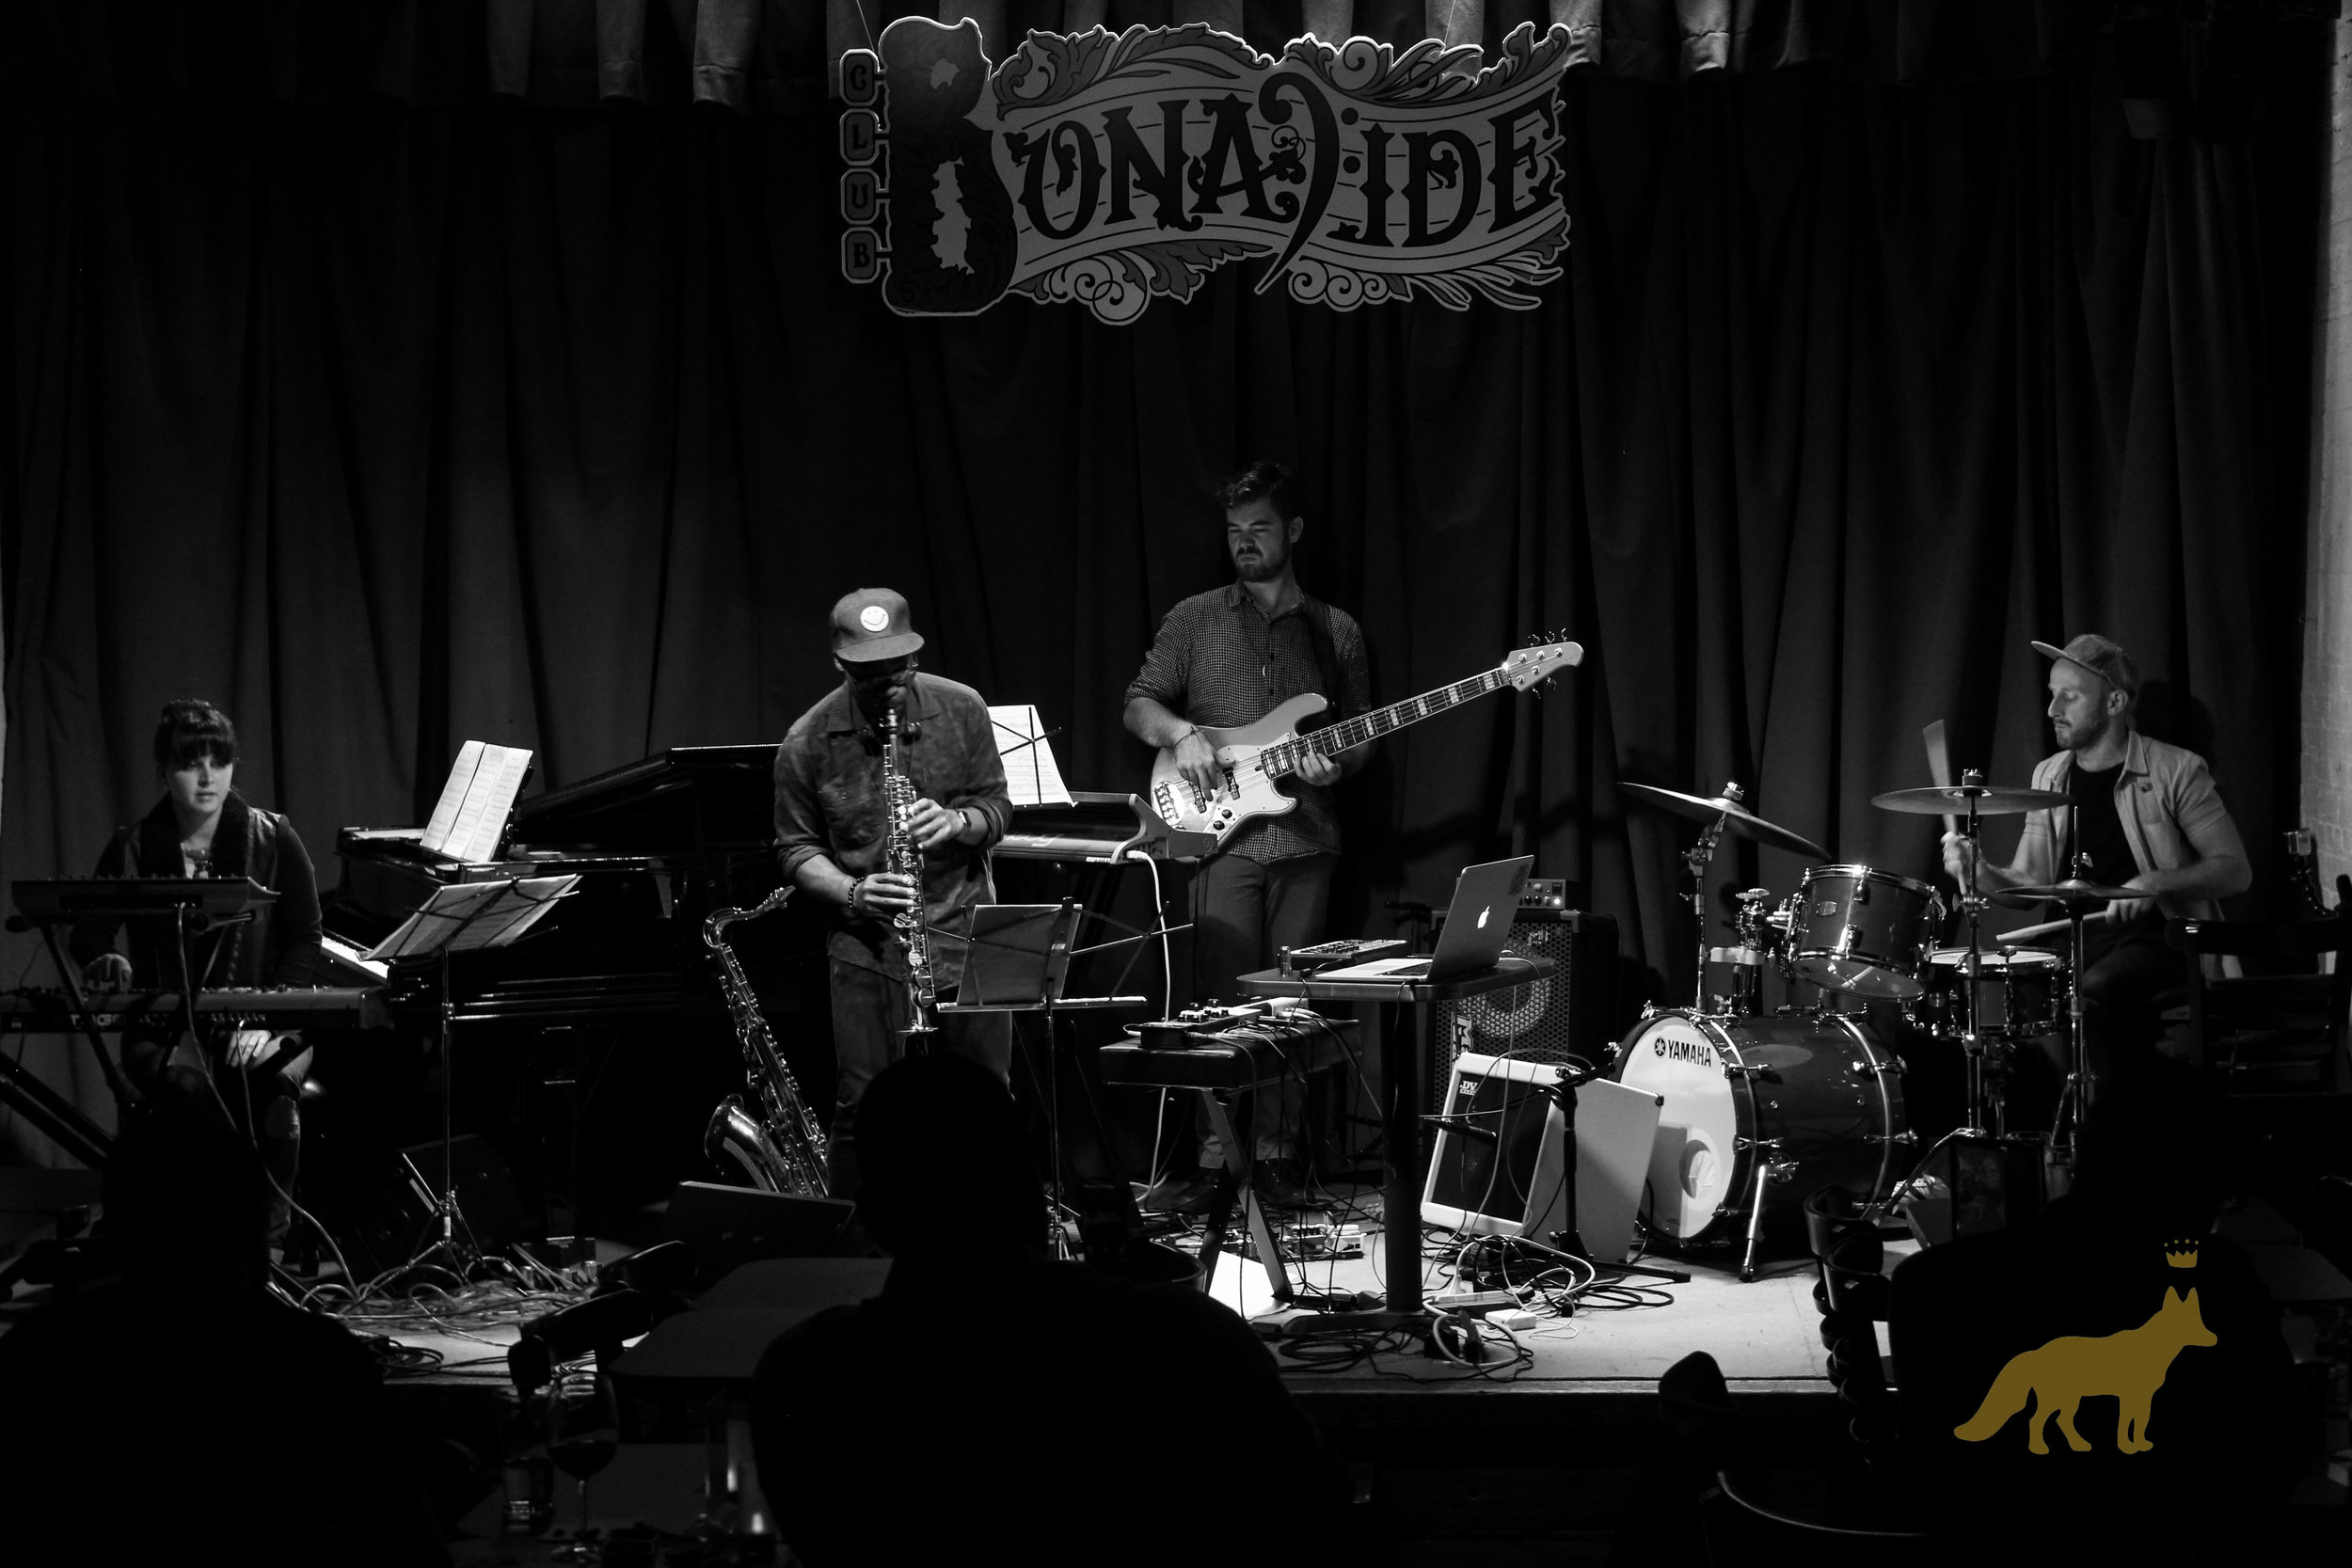 Humankindition live at Club Bonafide. Photo courtesy of Kevin Vallejos